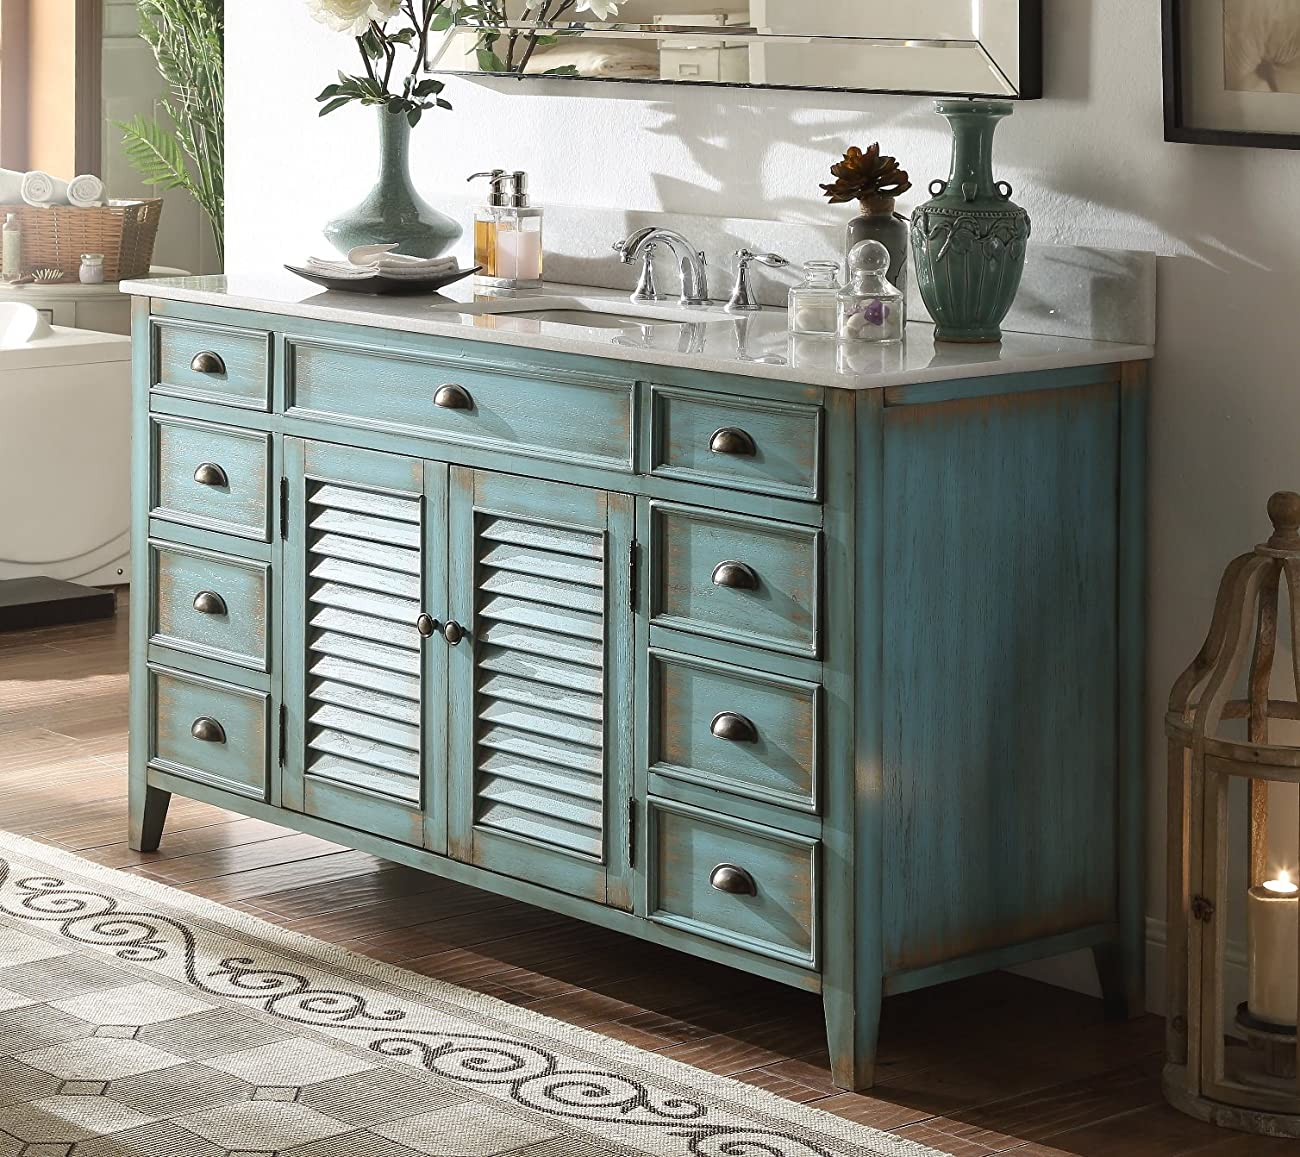 "60"" Cottage look Single Sink Abbeville Bathroom Sink vanity Model CF-66323BU-60 0"